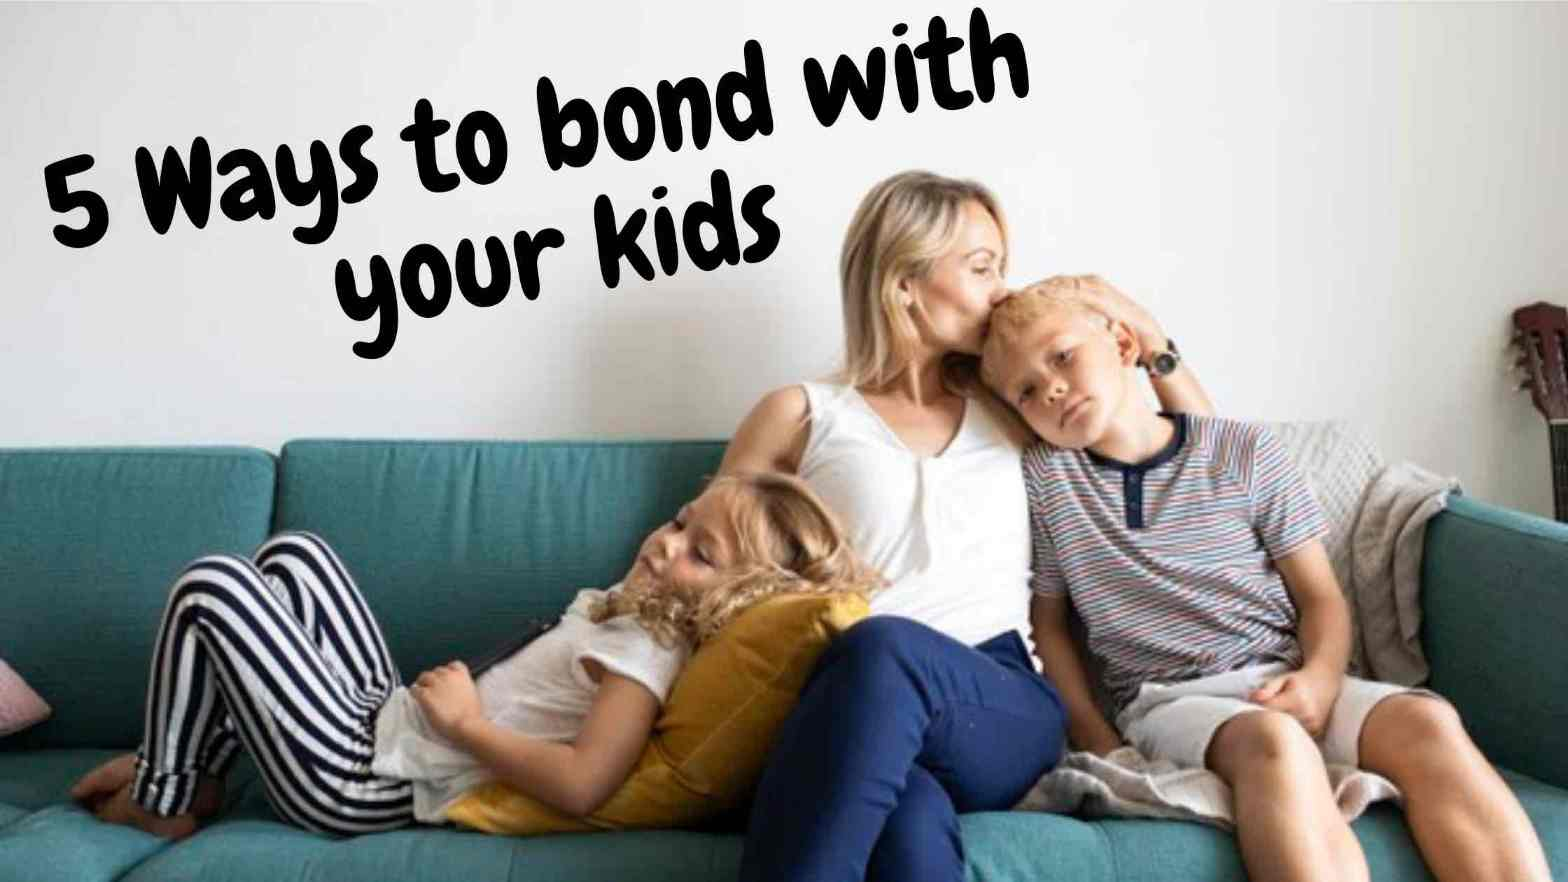 5 Easy Ways to bond with your kids